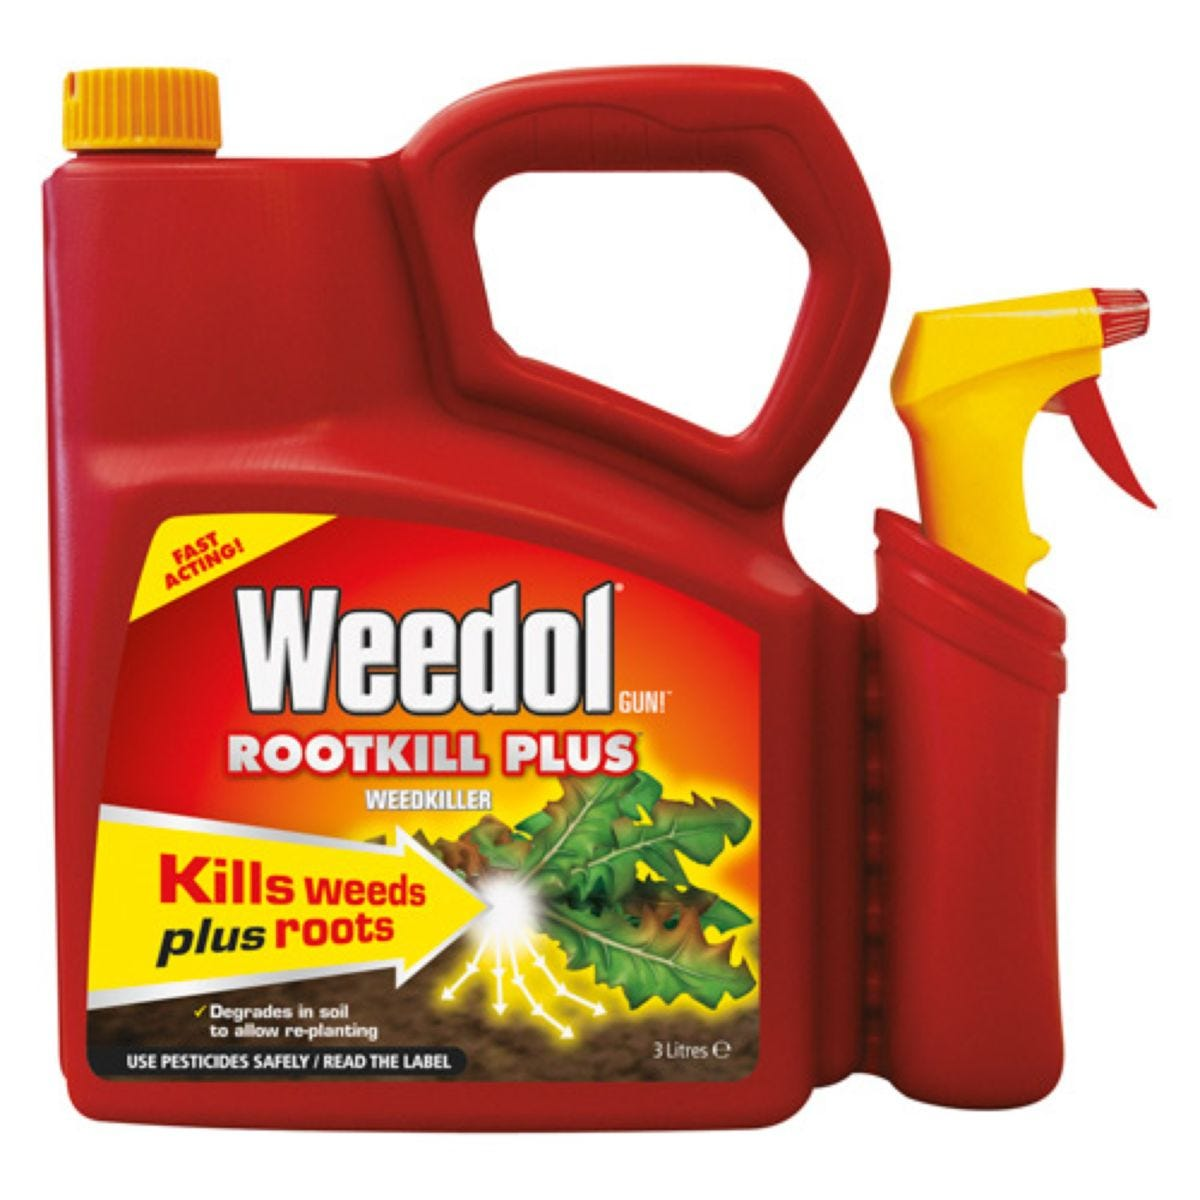 Weedol Ready-to-Use Root Killer with Spray Trigger - 3L